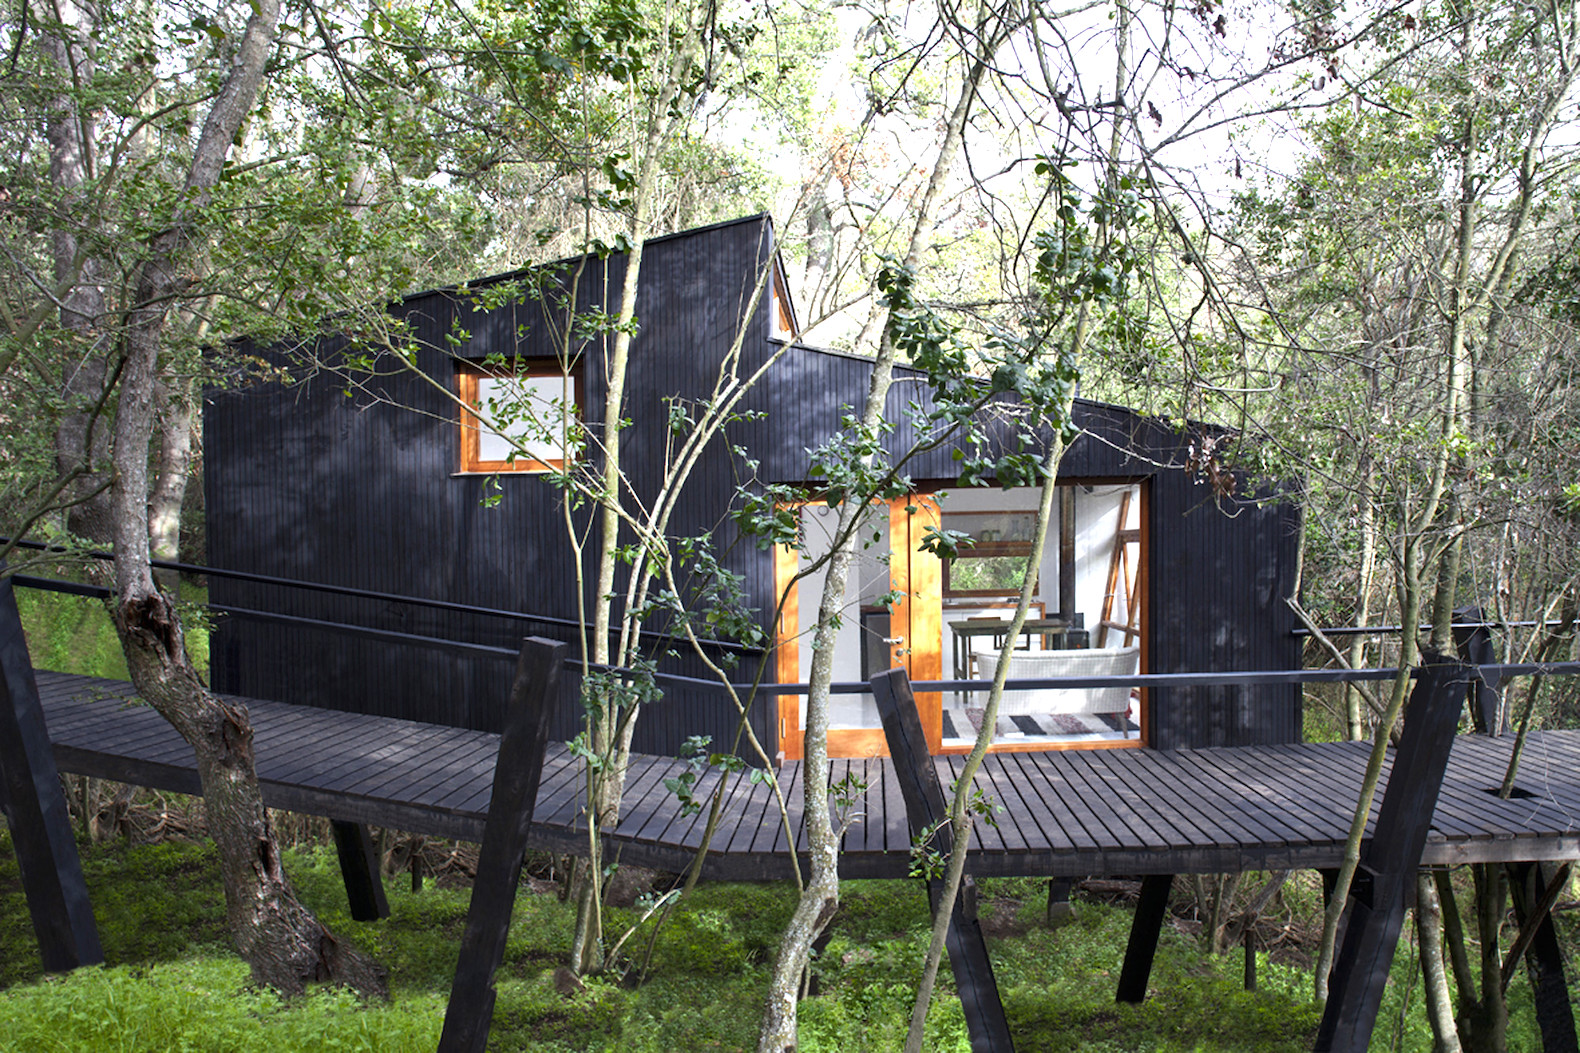 Casa quebrada is a tiny treehouse like haven immersed in the